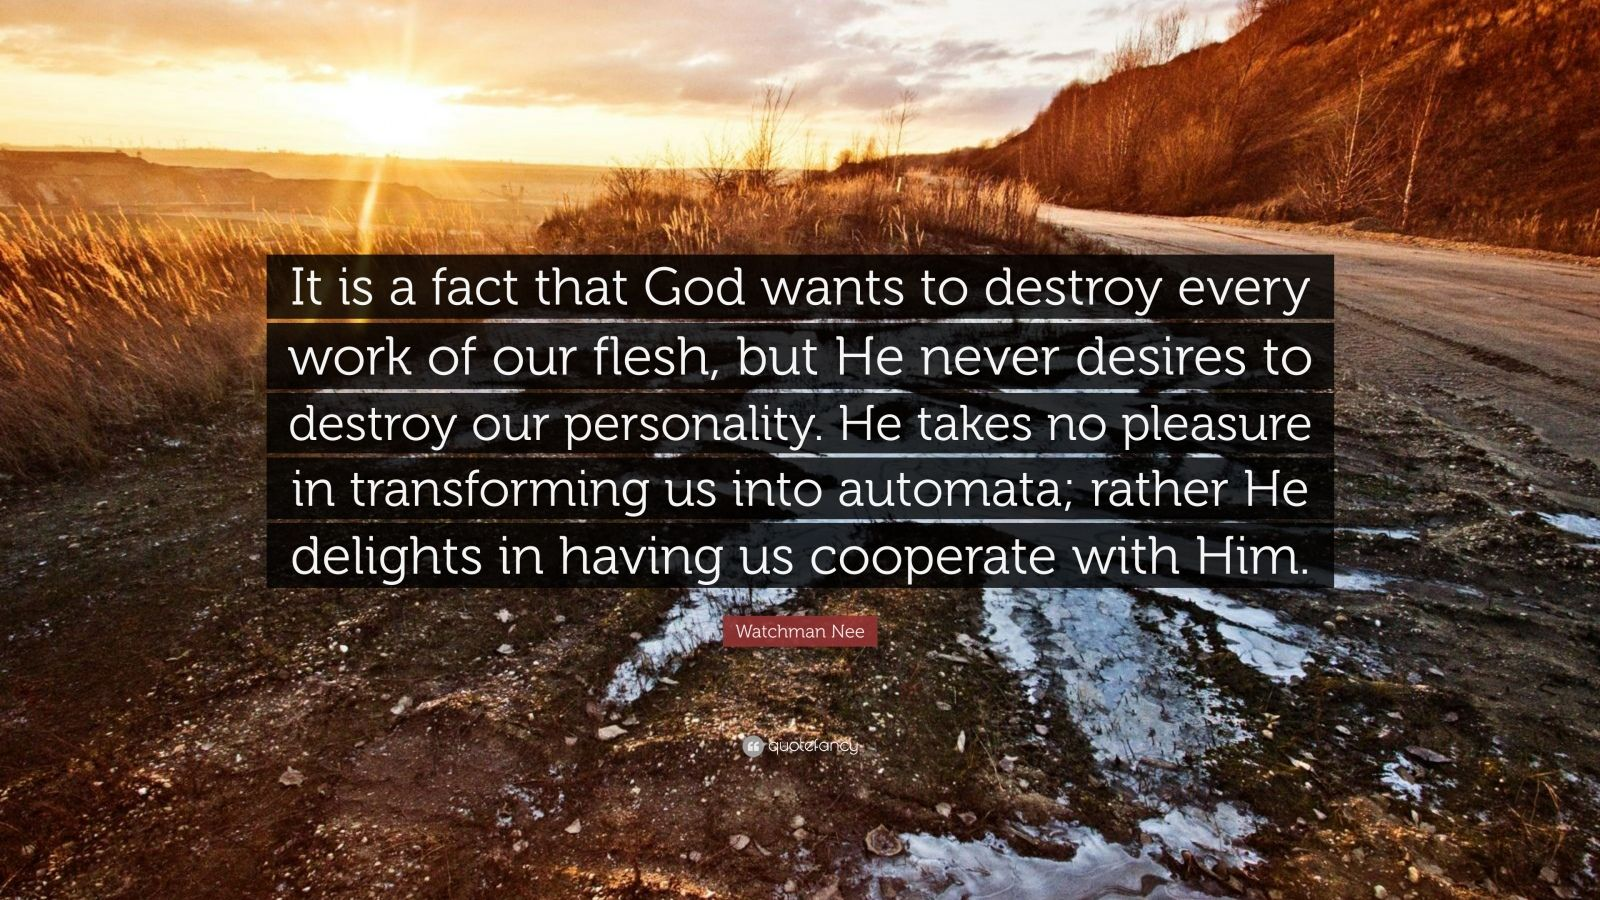 """Watchman Nee Quote: """"It is a fact that God wants to destroy every work of our flesh, but He never desires to destroy our personality. He takes no pleasure in transforming us into automata; rather He delights in having us cooperate with Him."""""""